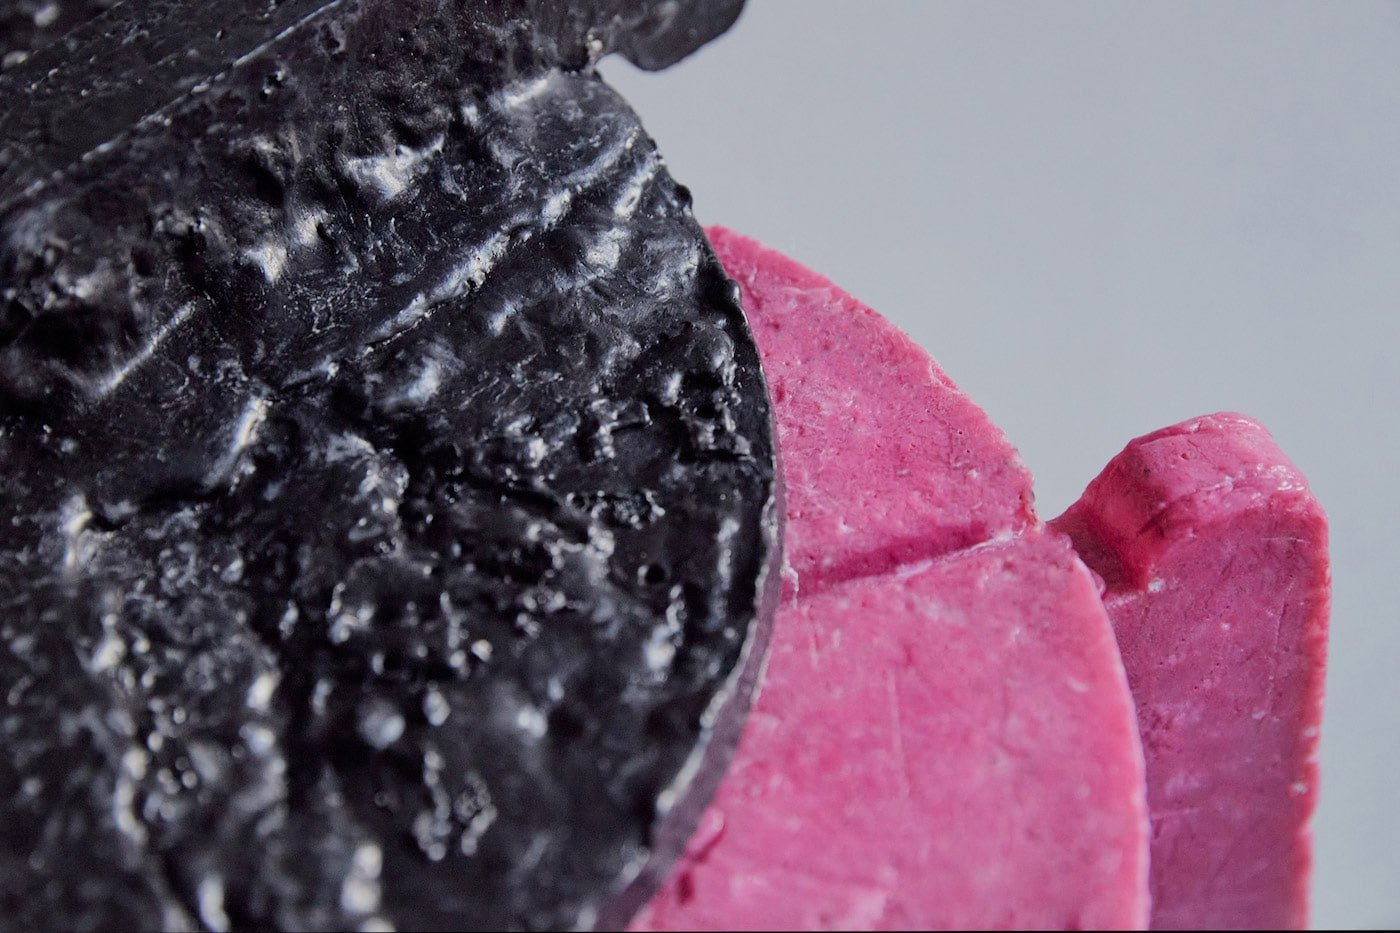 Close up of black and pink stools made from recycled face masks